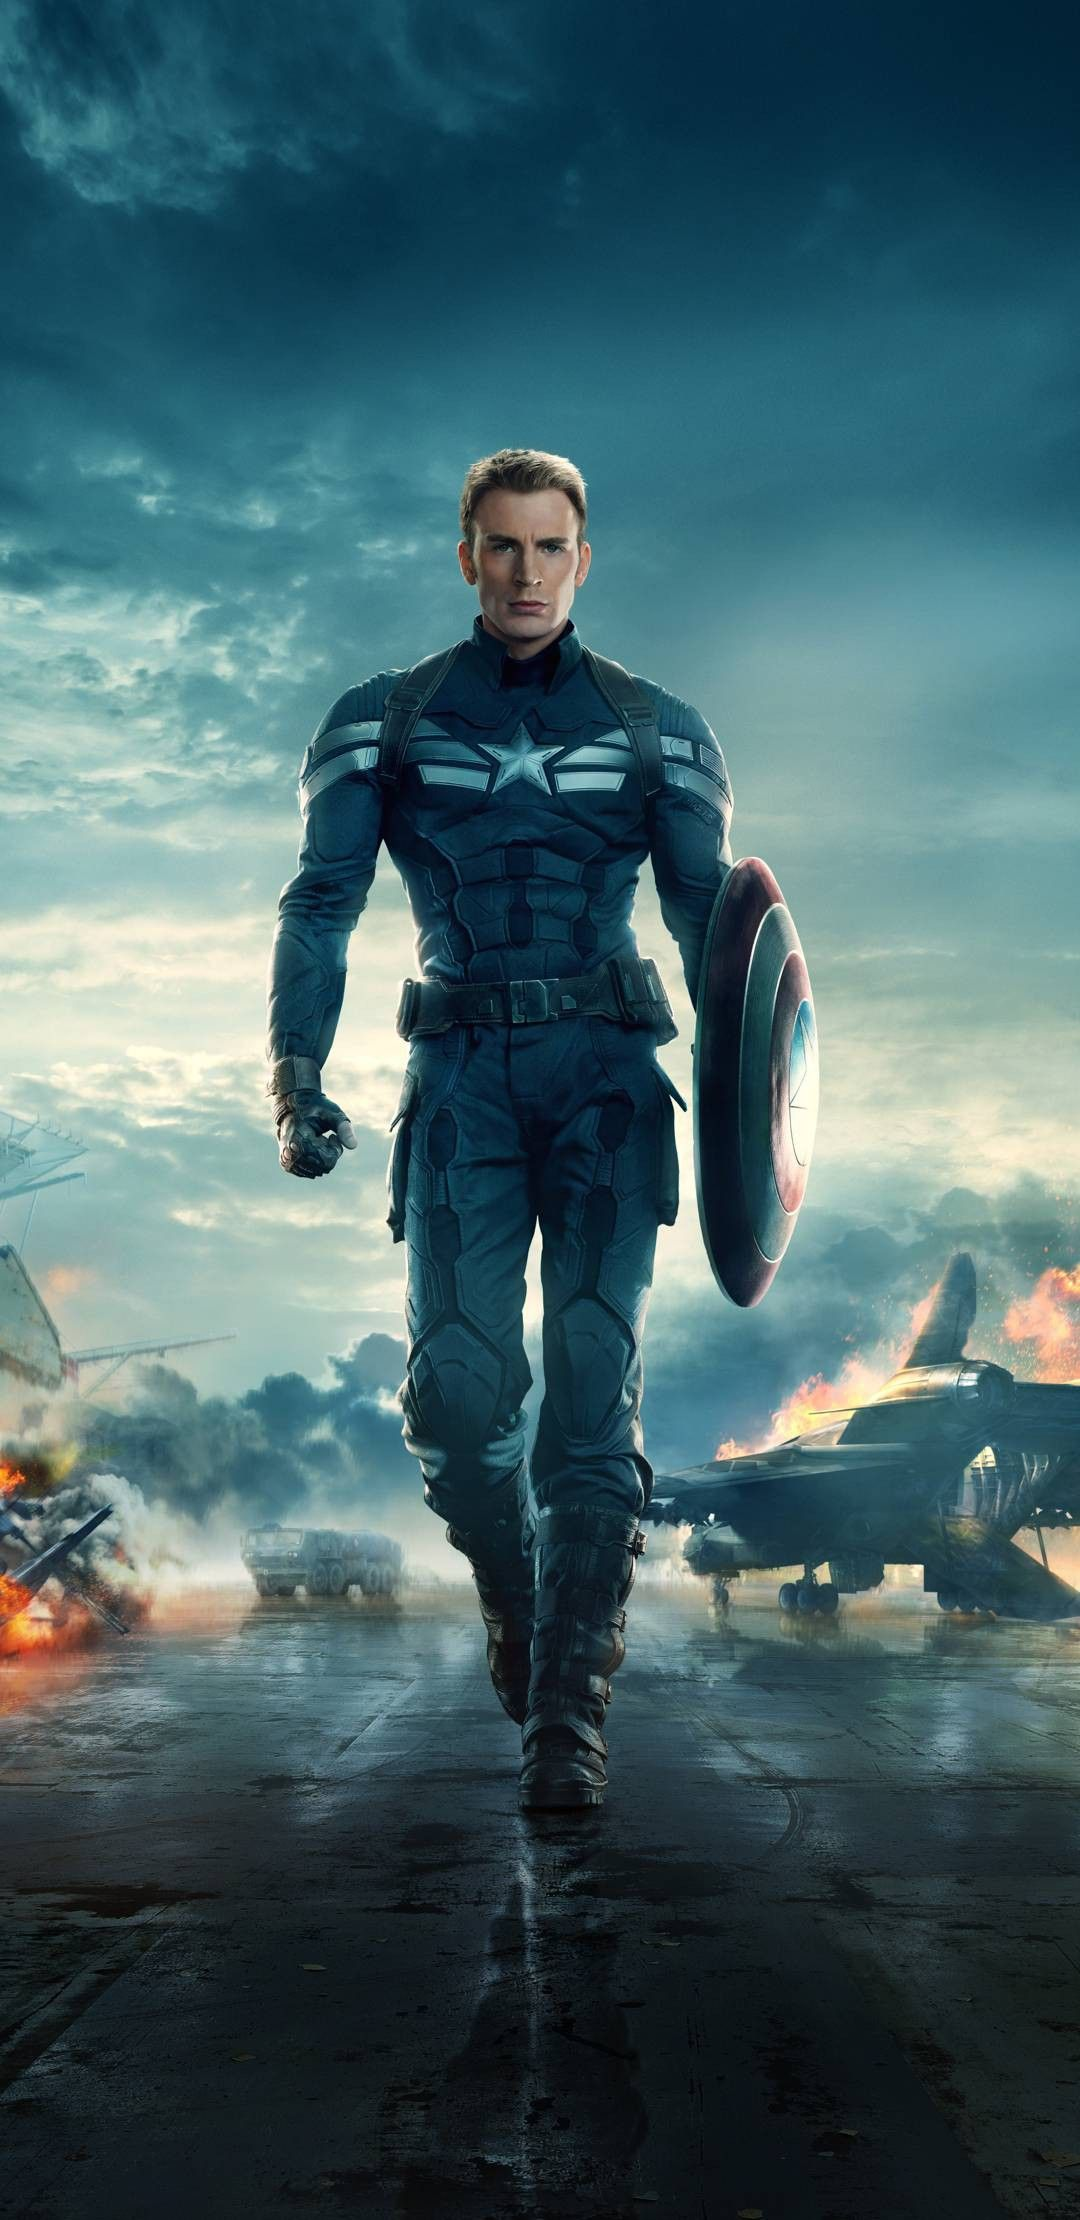 Captain America The Winter Solider Textless Wallpaper Marvel Captain America Marvel Movies Captain America Wallpaper